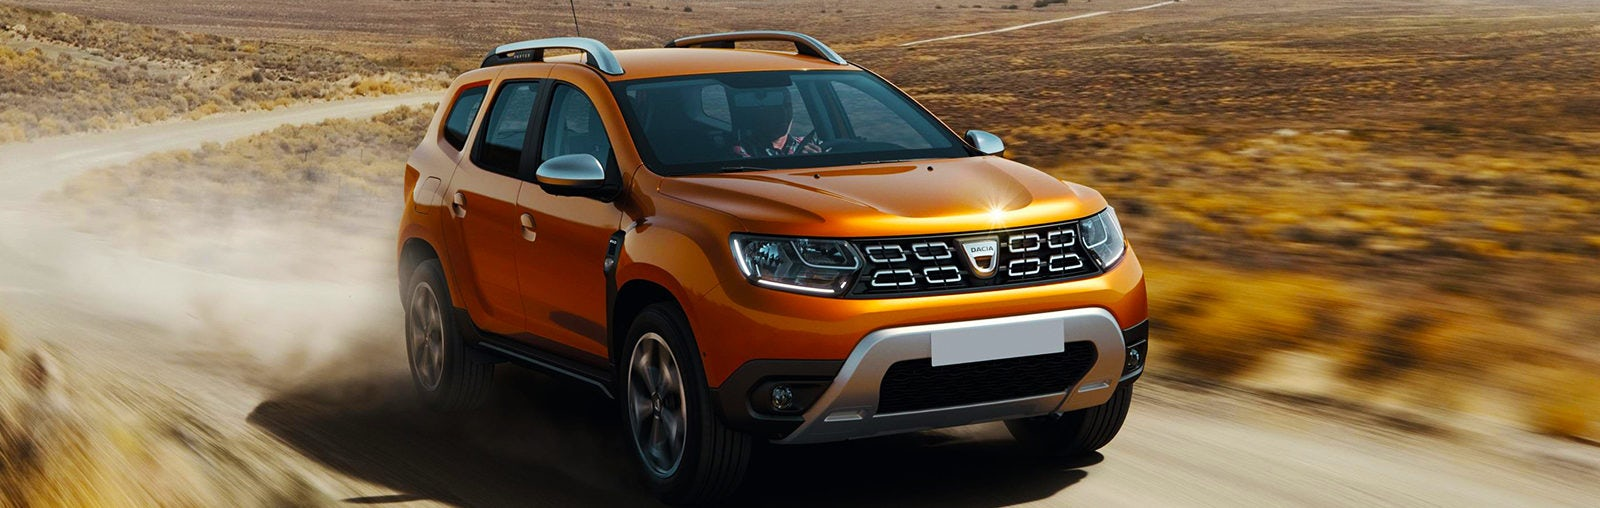 2018 dacia duster price specs and release date carwow for Dacia duster specifications